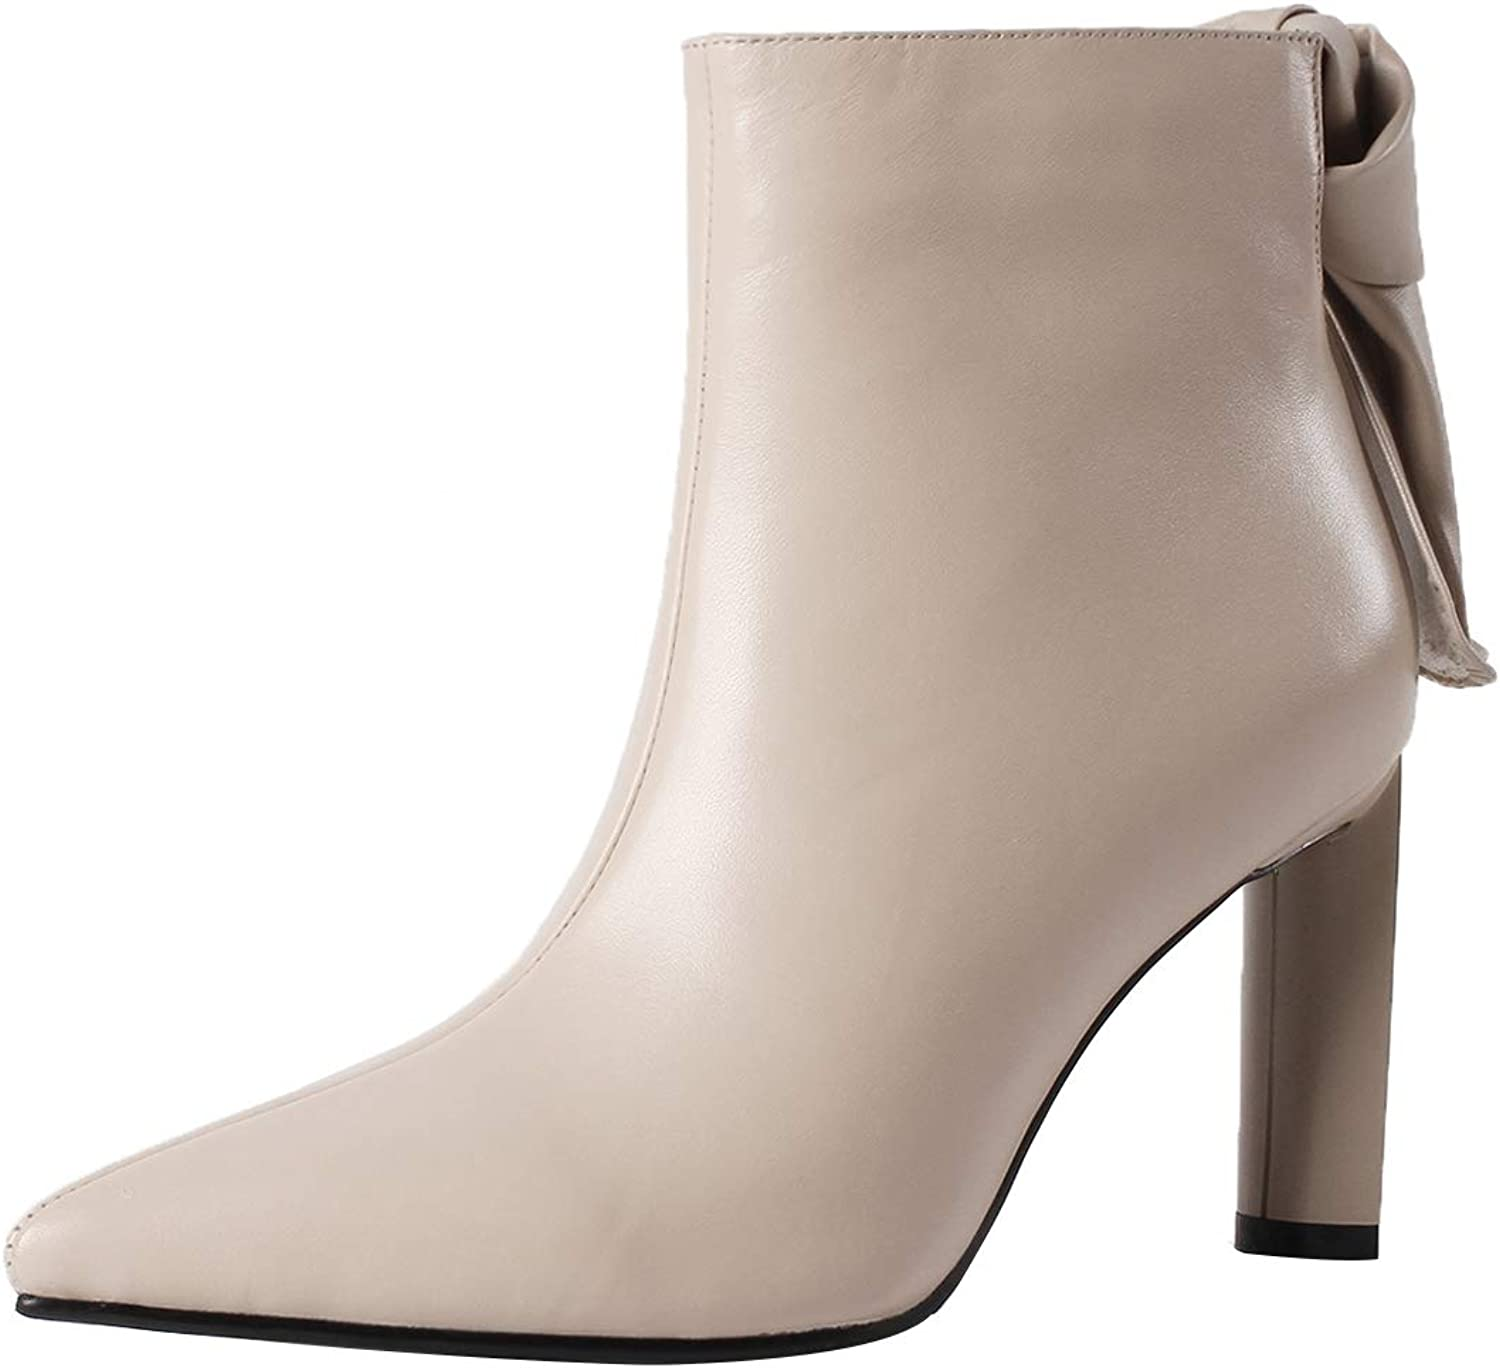 Eithy Women's Shage Stiletto Ankle-high Zipper Leather Boots